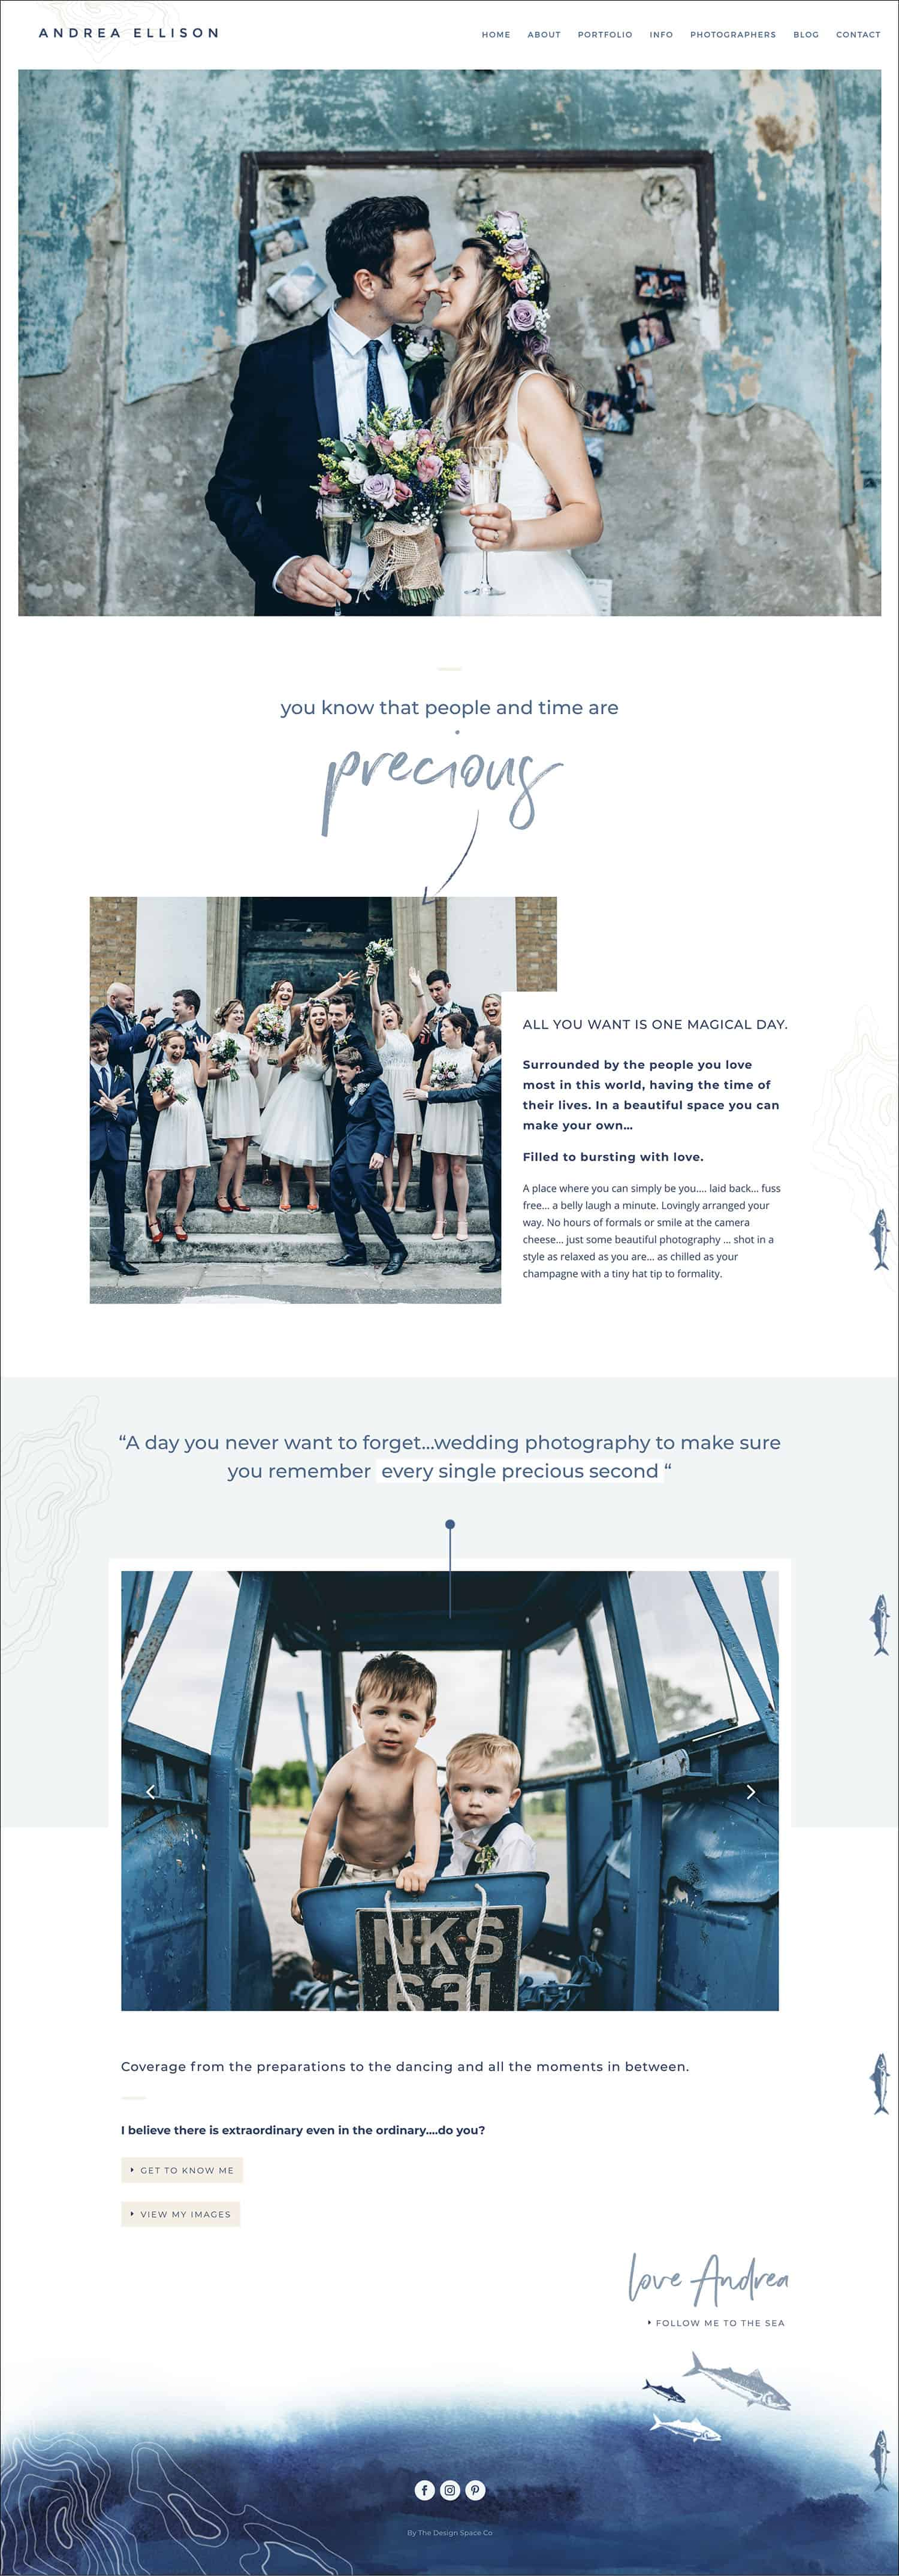 How To Make A Photography Website Your Dream Clients Can't Resist: Andrea Ellison's homepage delivers a clear call to action path that leads visitors precisely where she wants them to go.